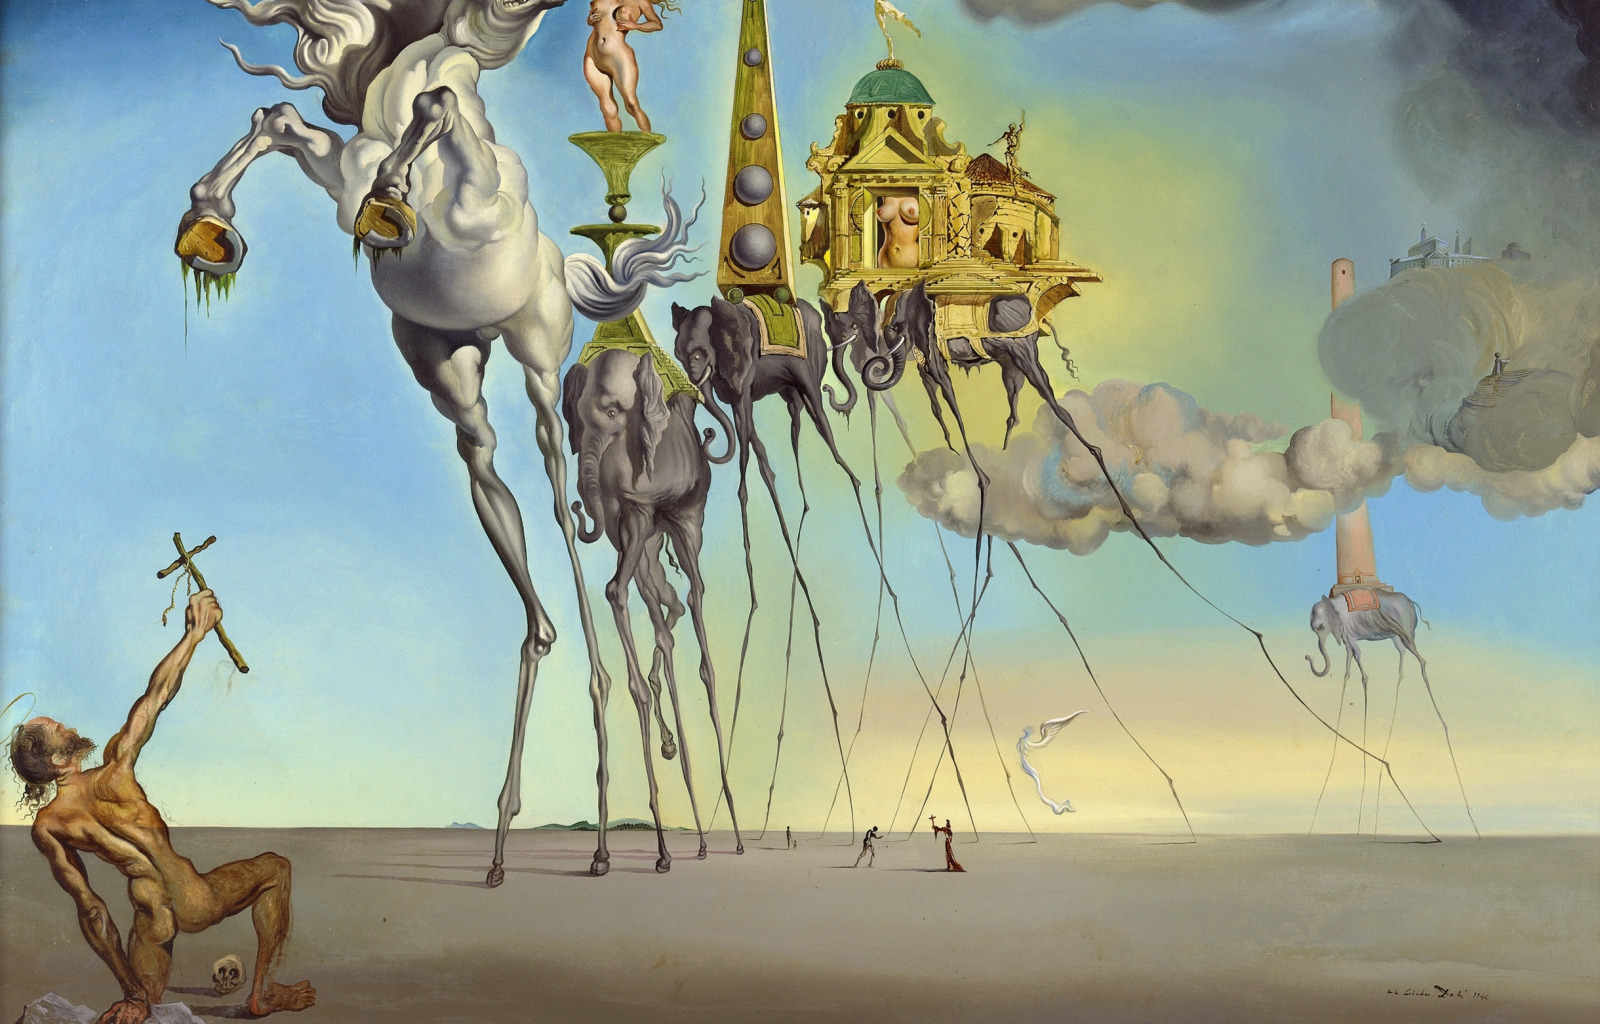 salvador dali influences essays Salvador dali: influences this essay salvador dali: influences and other 63,000+ term papers, college essay examples and free essays are available now on reviewessayscom.